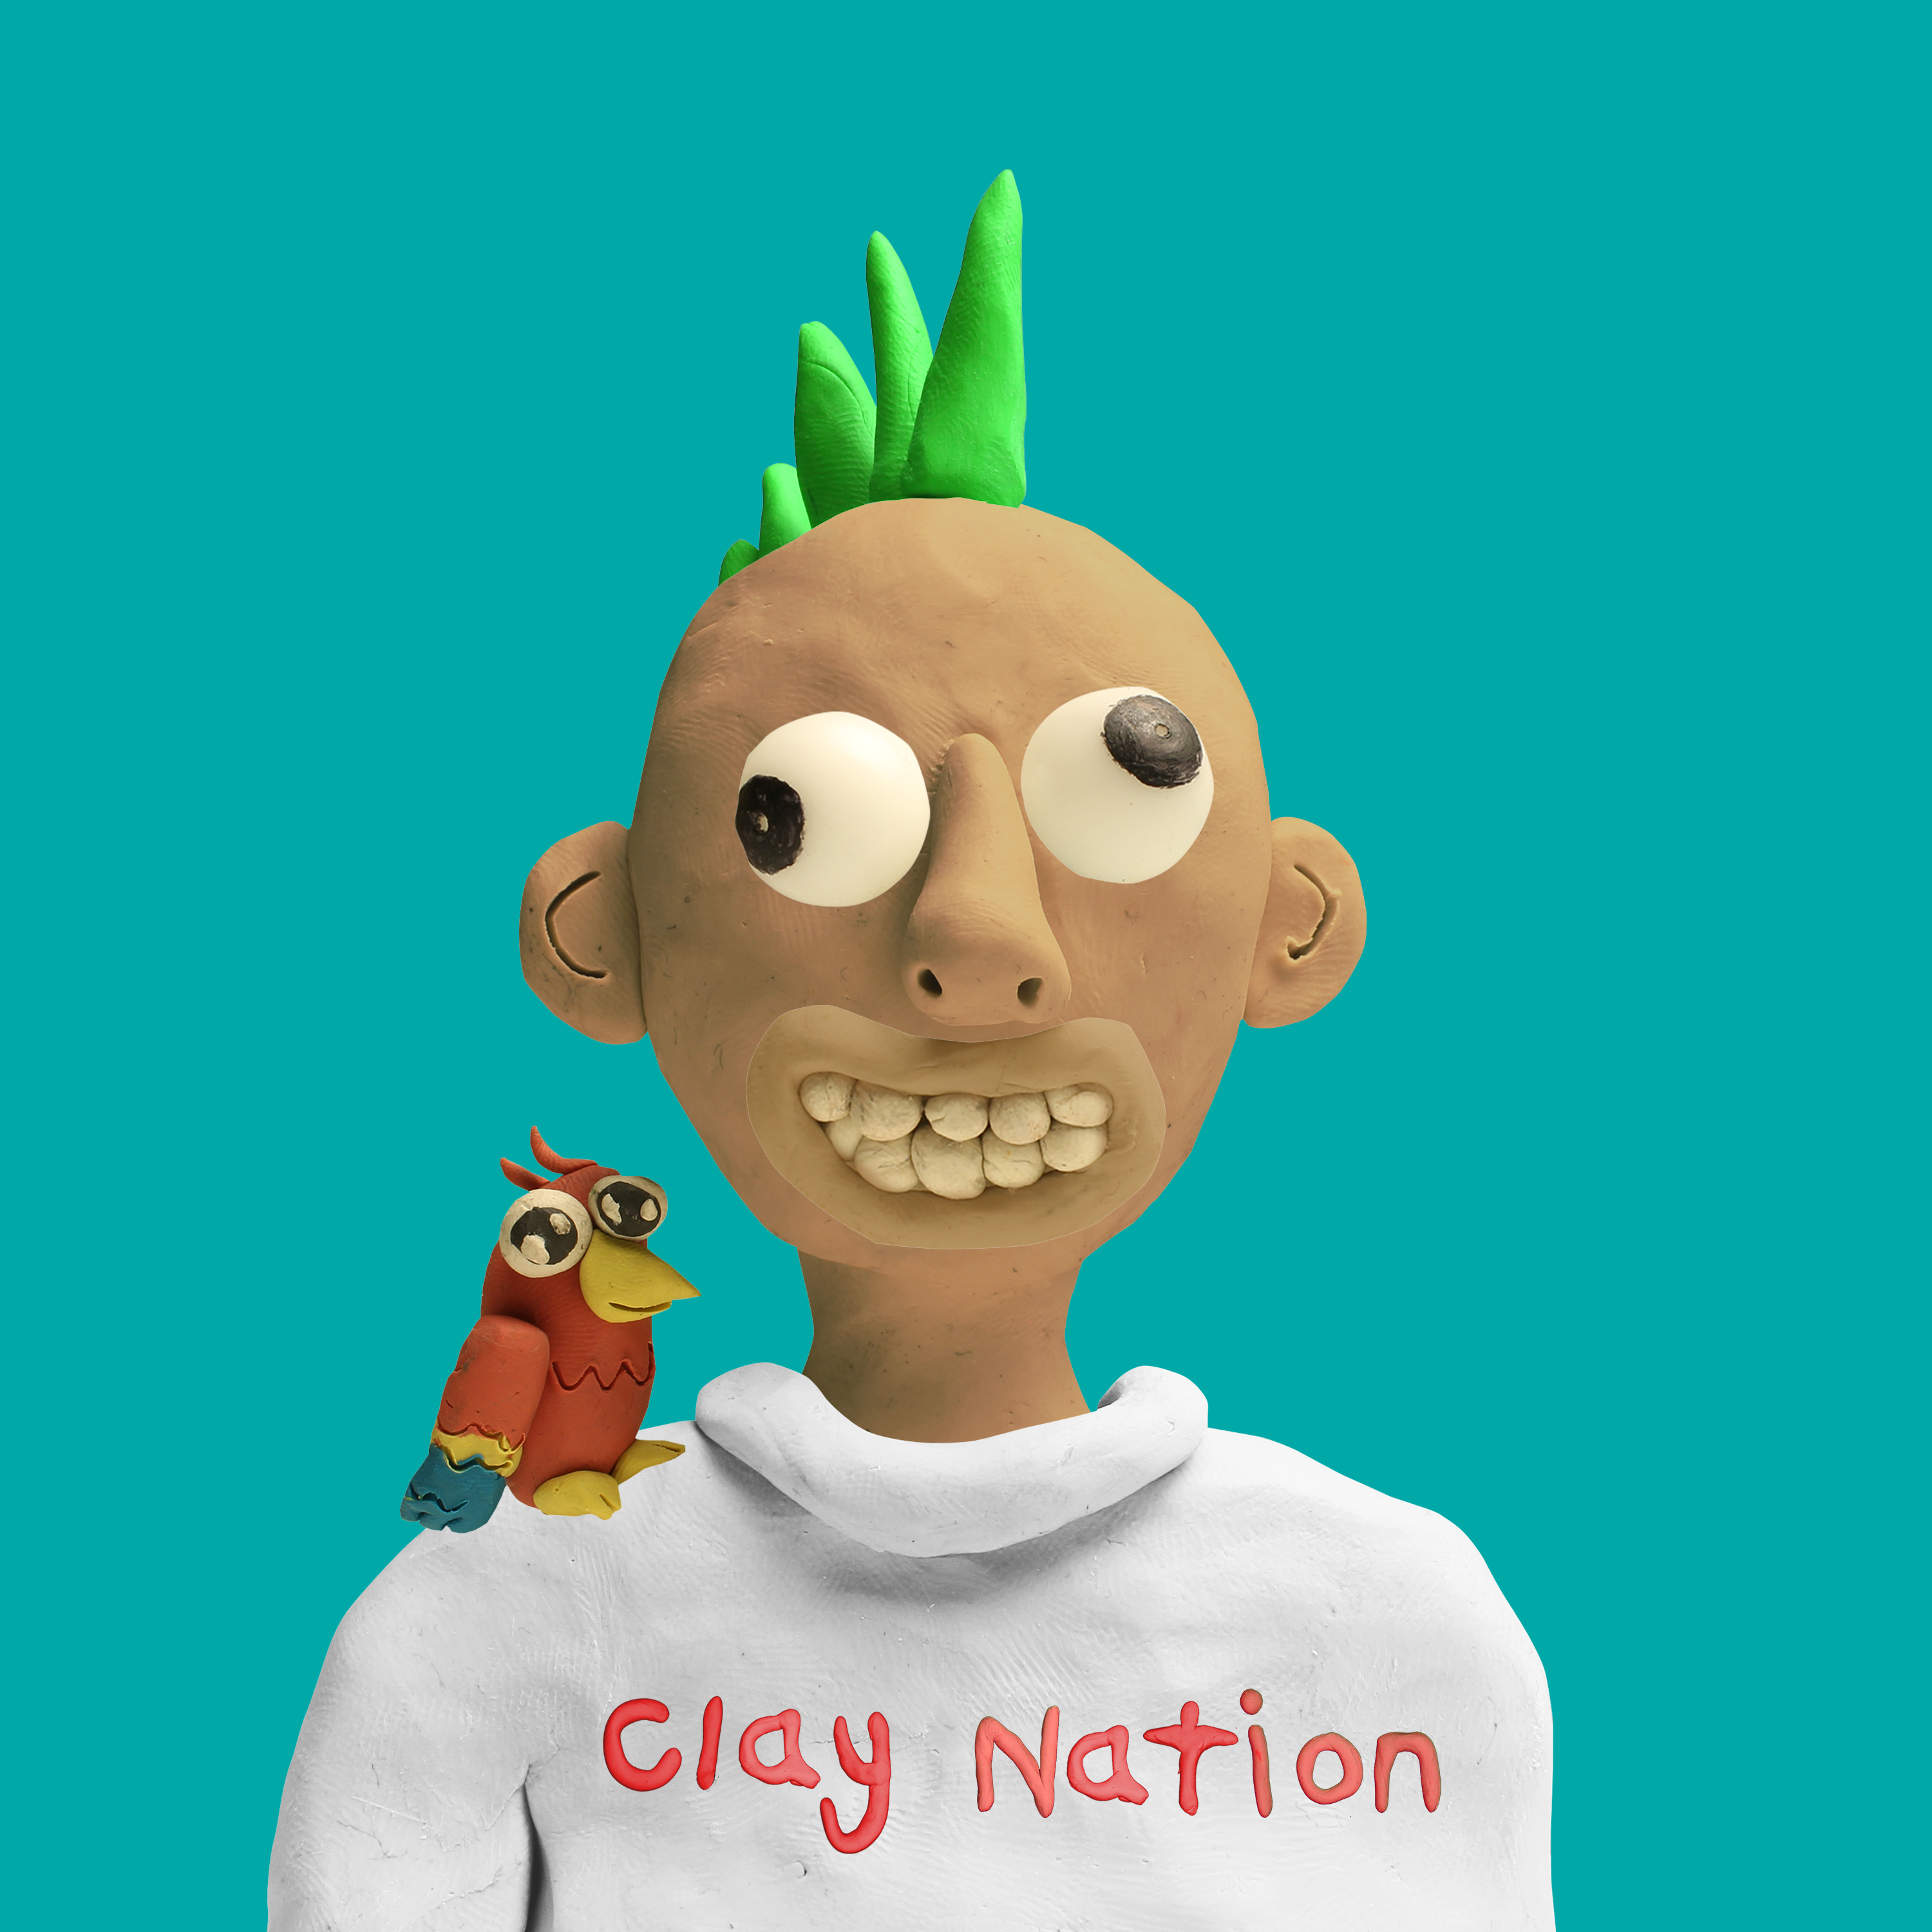 Clay Nation #7679